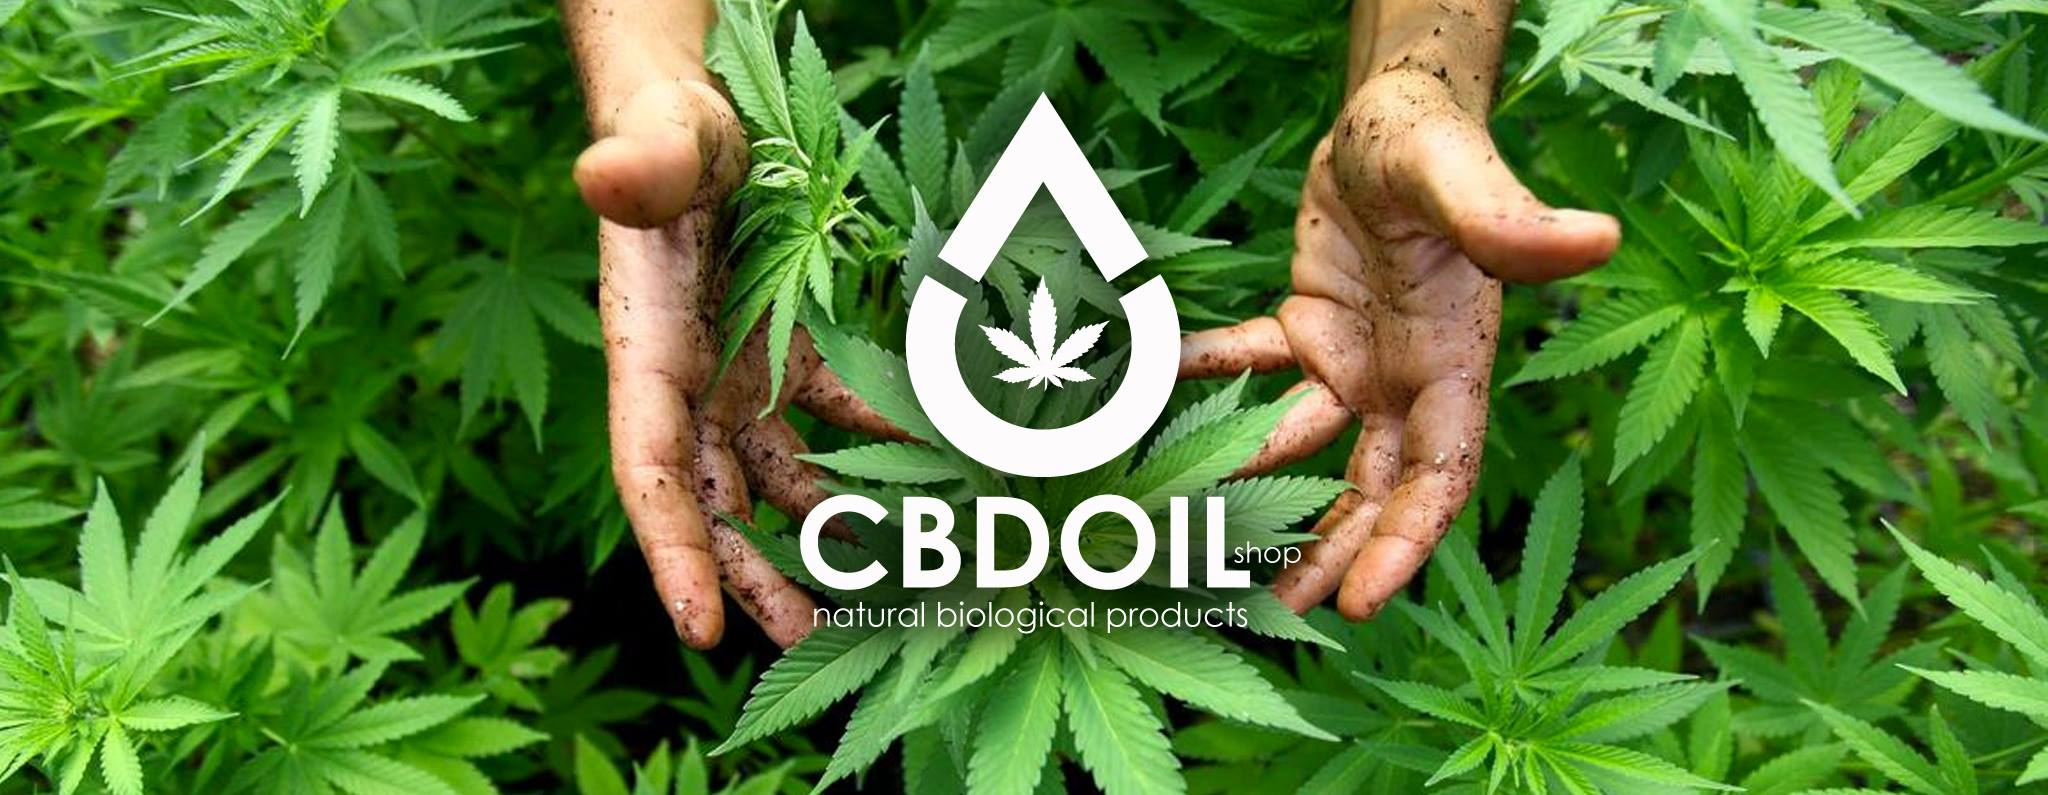 cbd oil shop.products